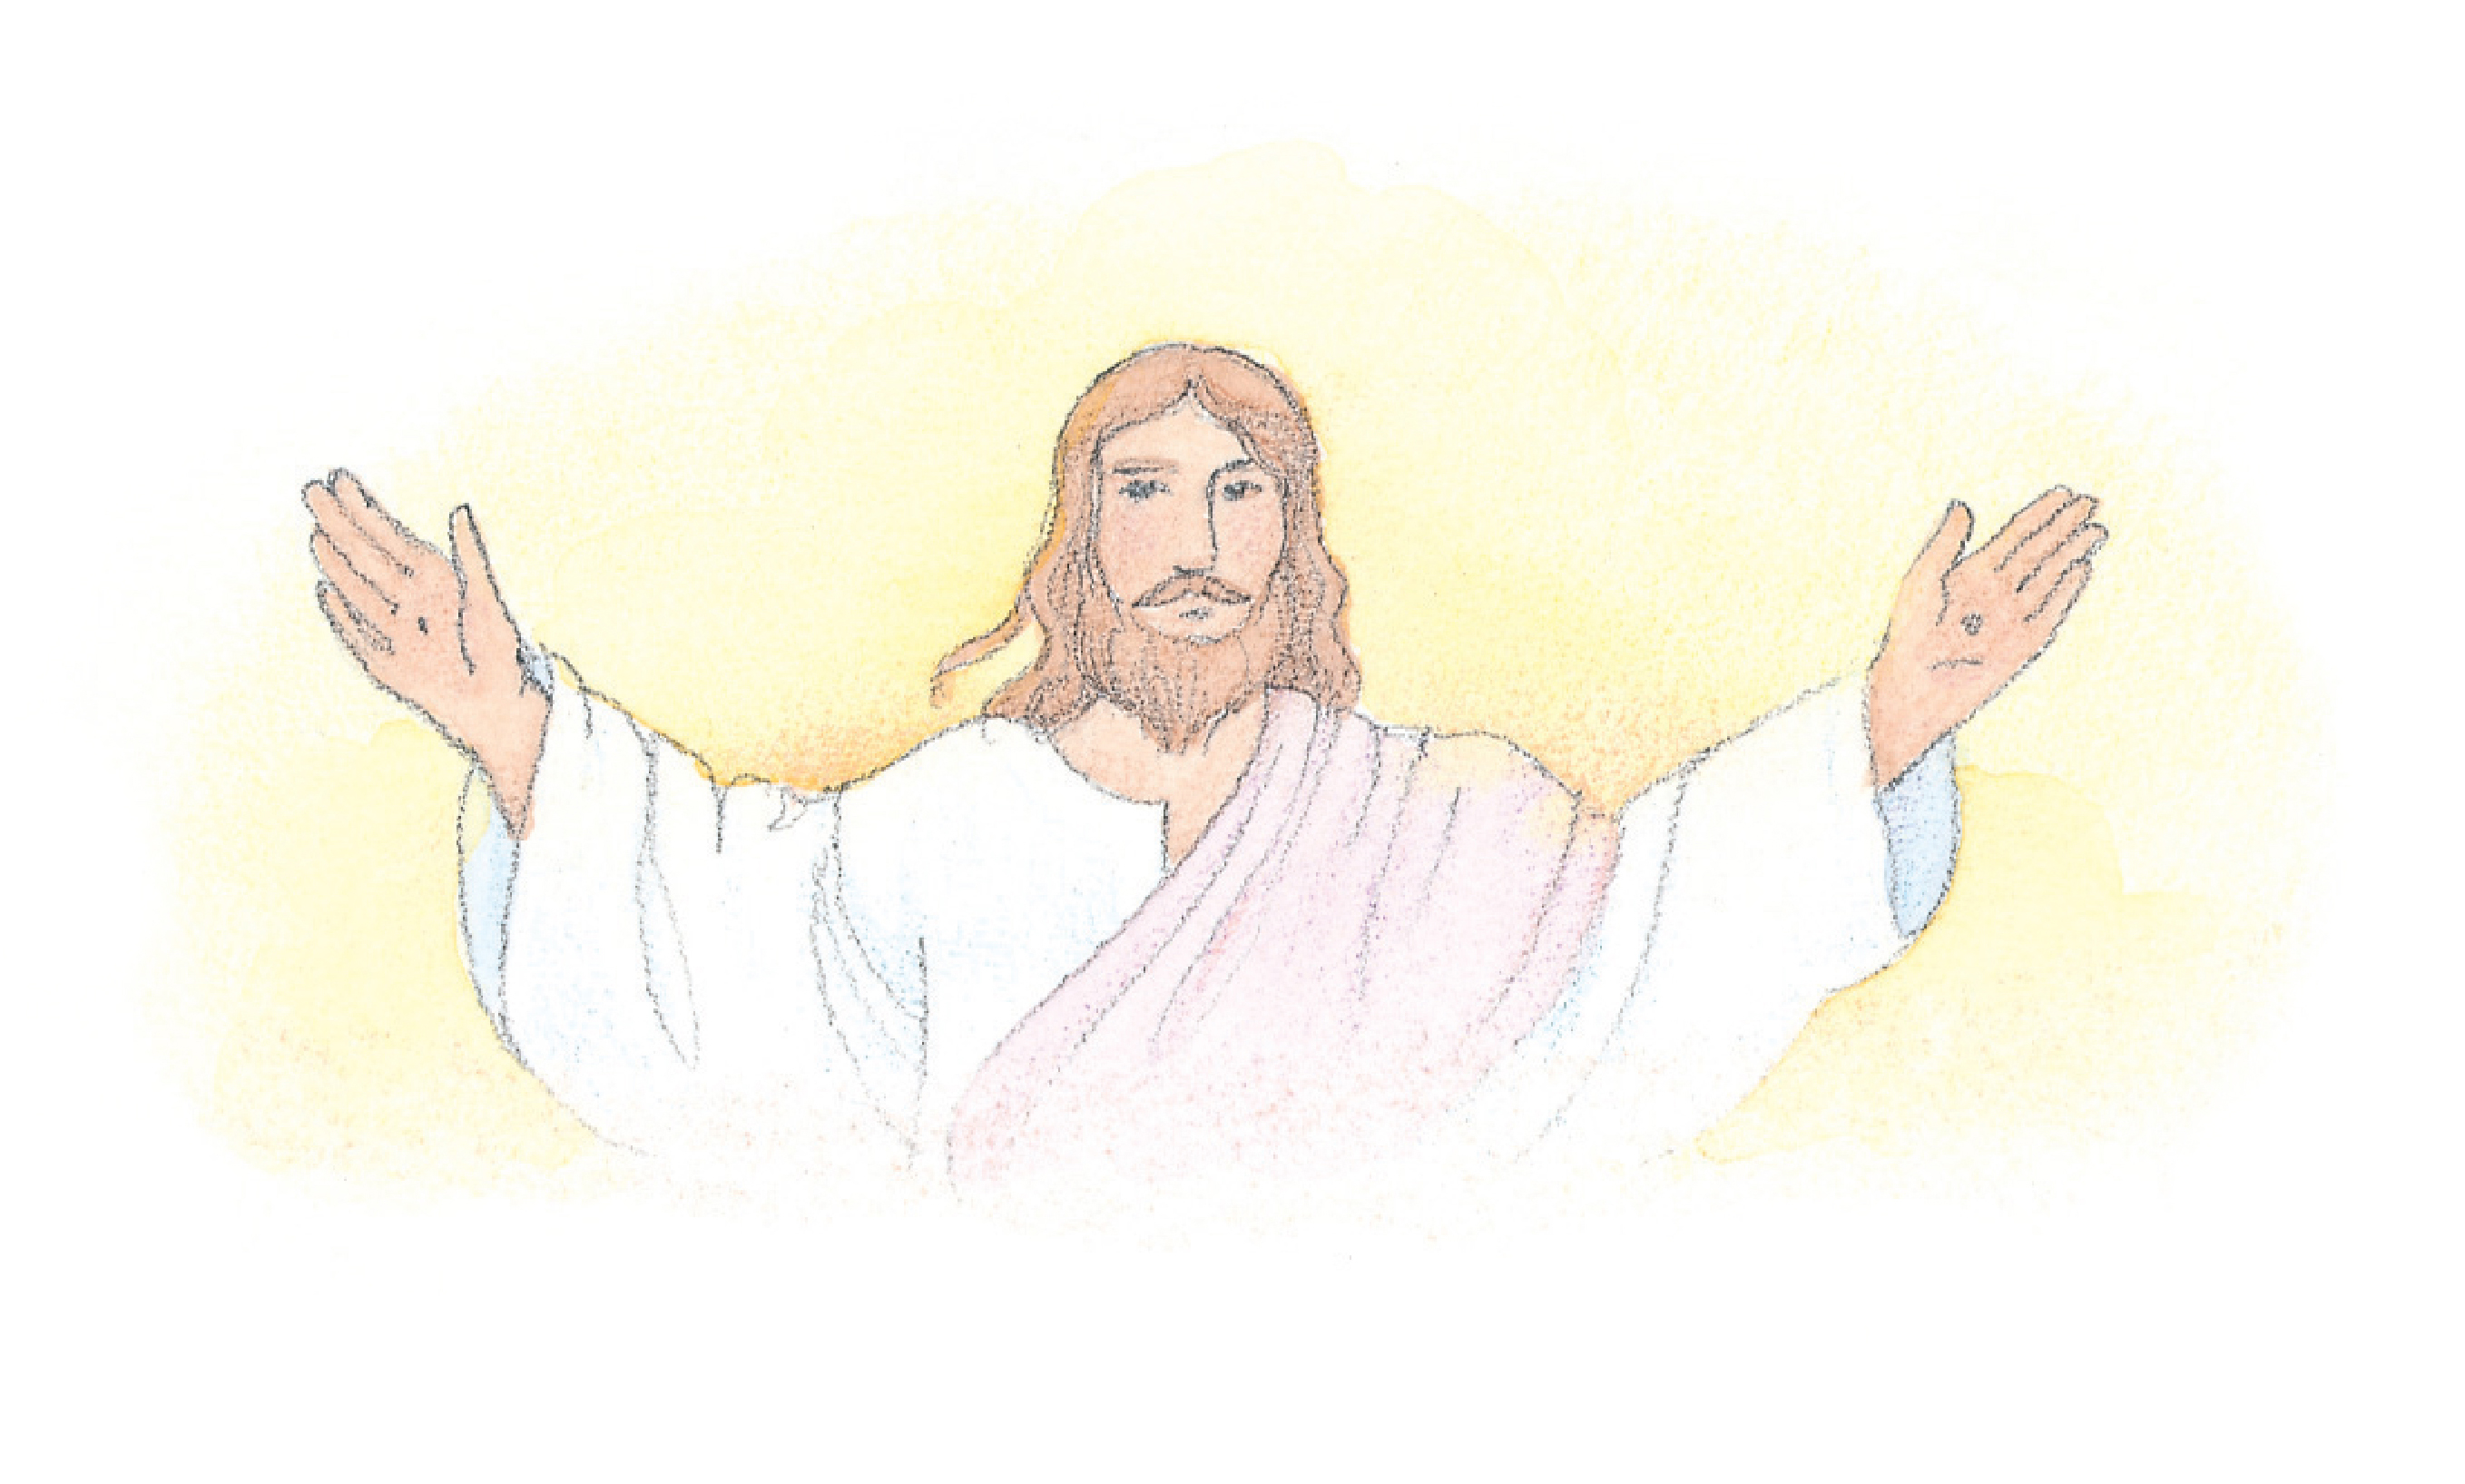 """Jesus Christ with His arms outstretched. From the Children's Songbook, page 76, """"This Is My Beloved Son""""; watercolor illustration by Phyllis Luch."""